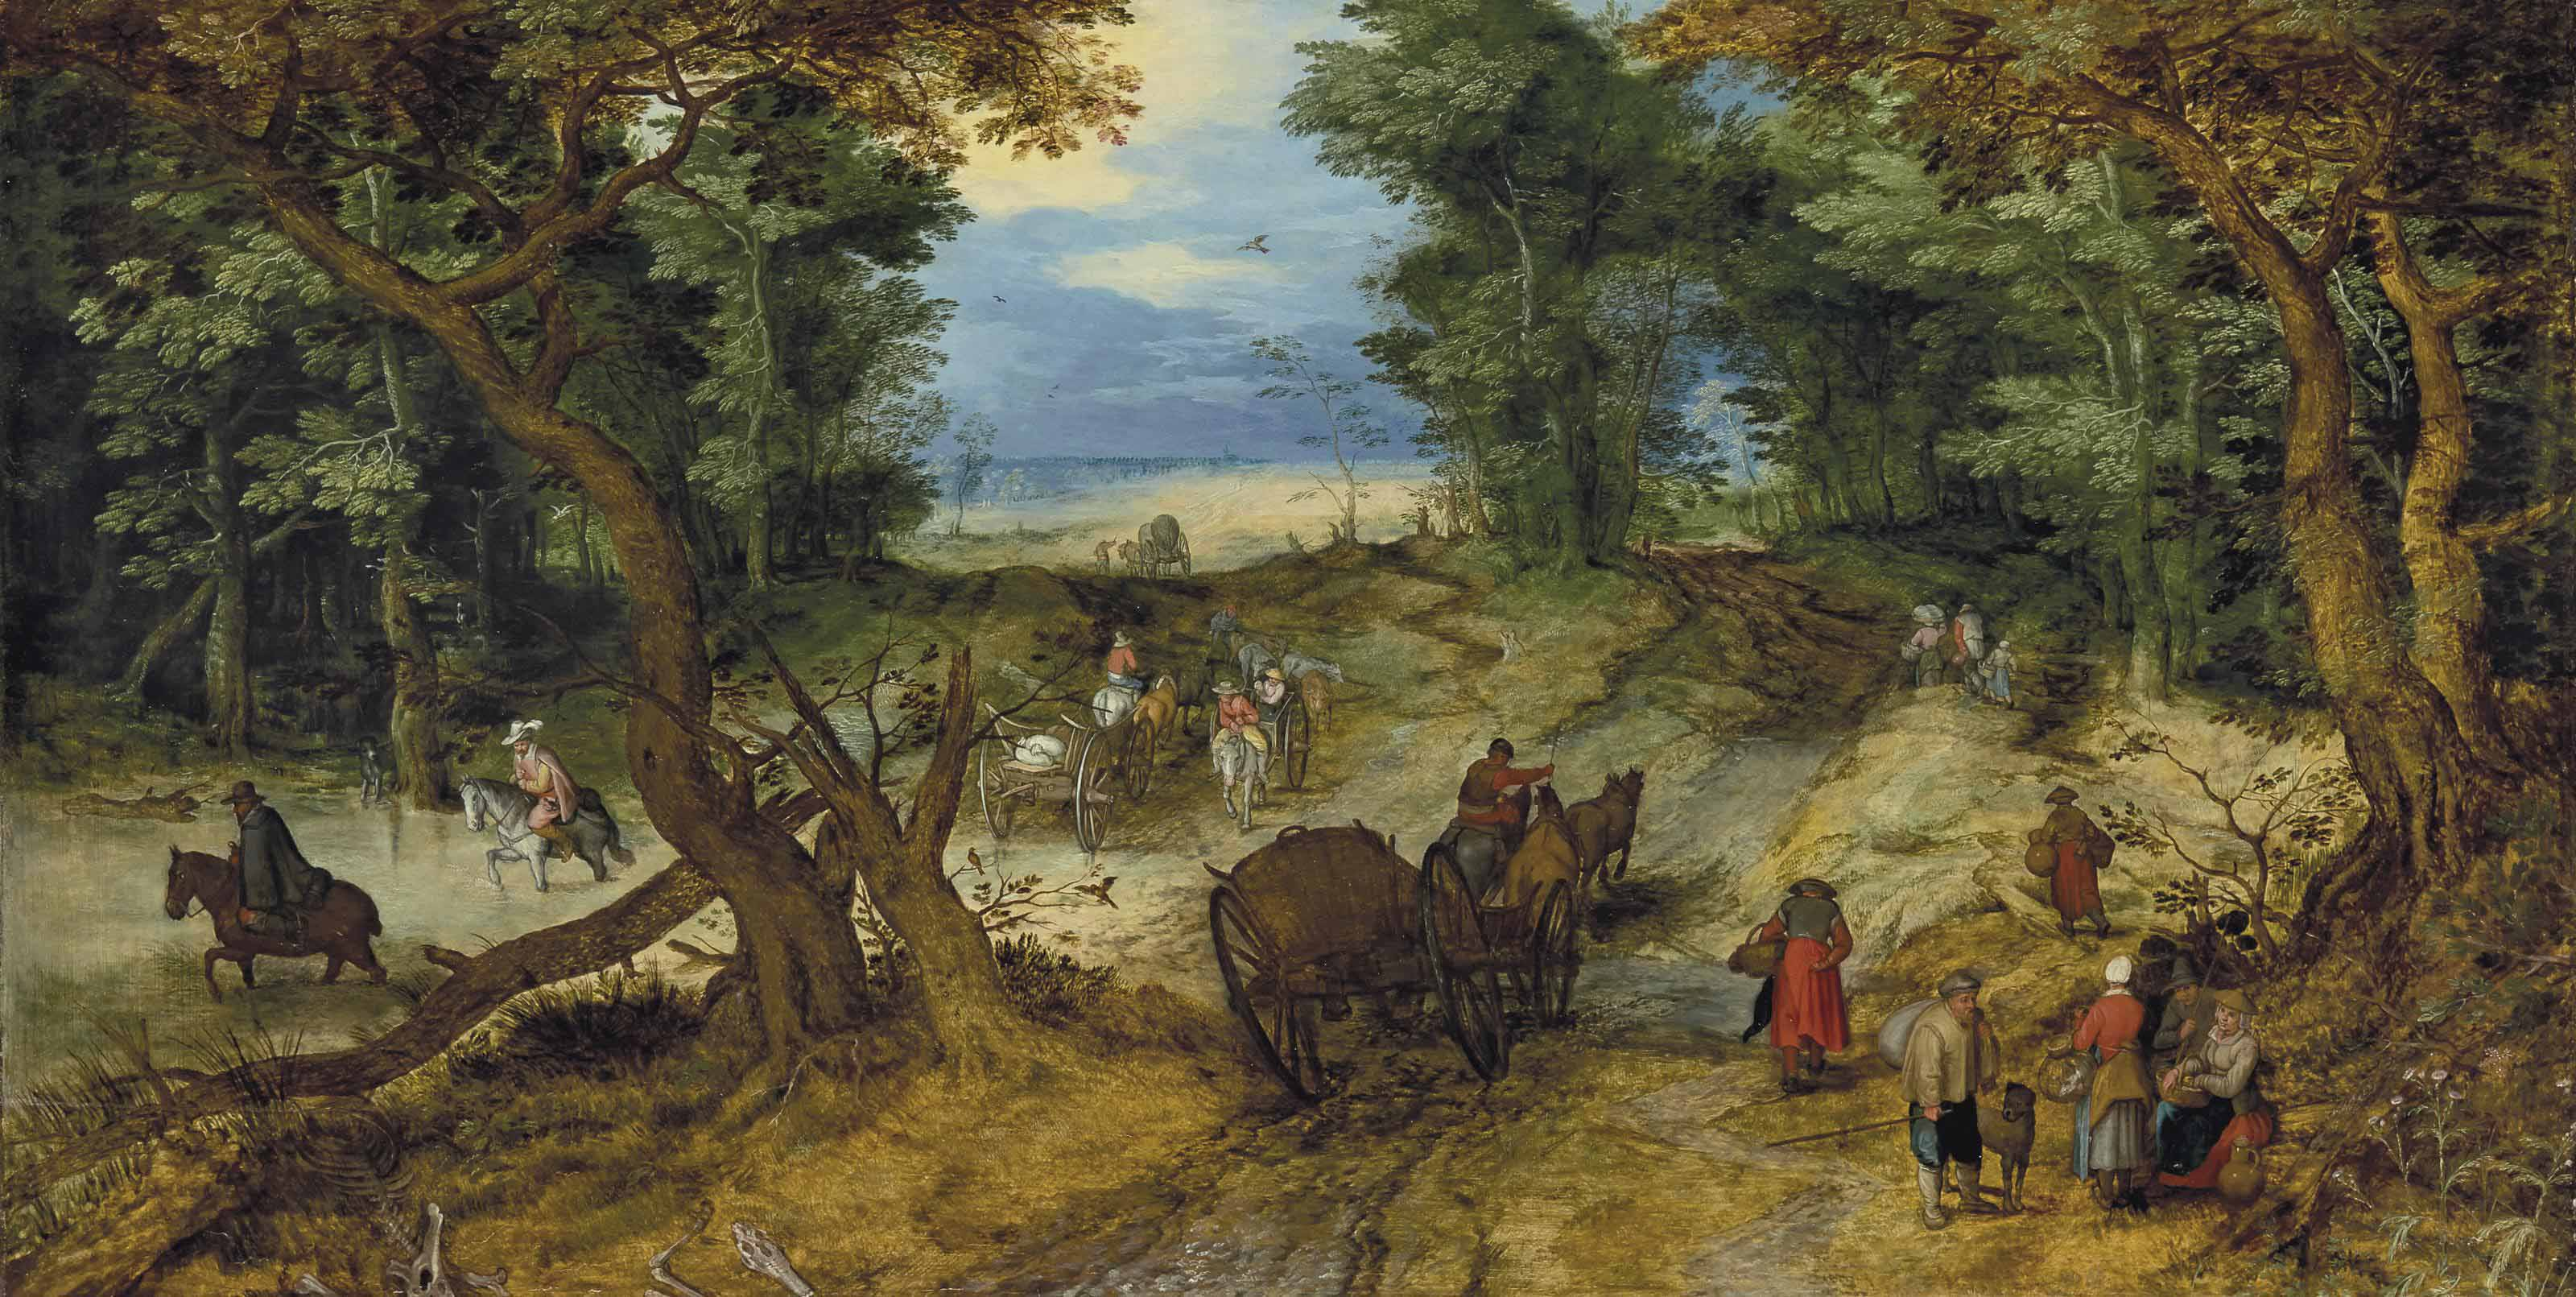 A wooded landscape with travelers on a path